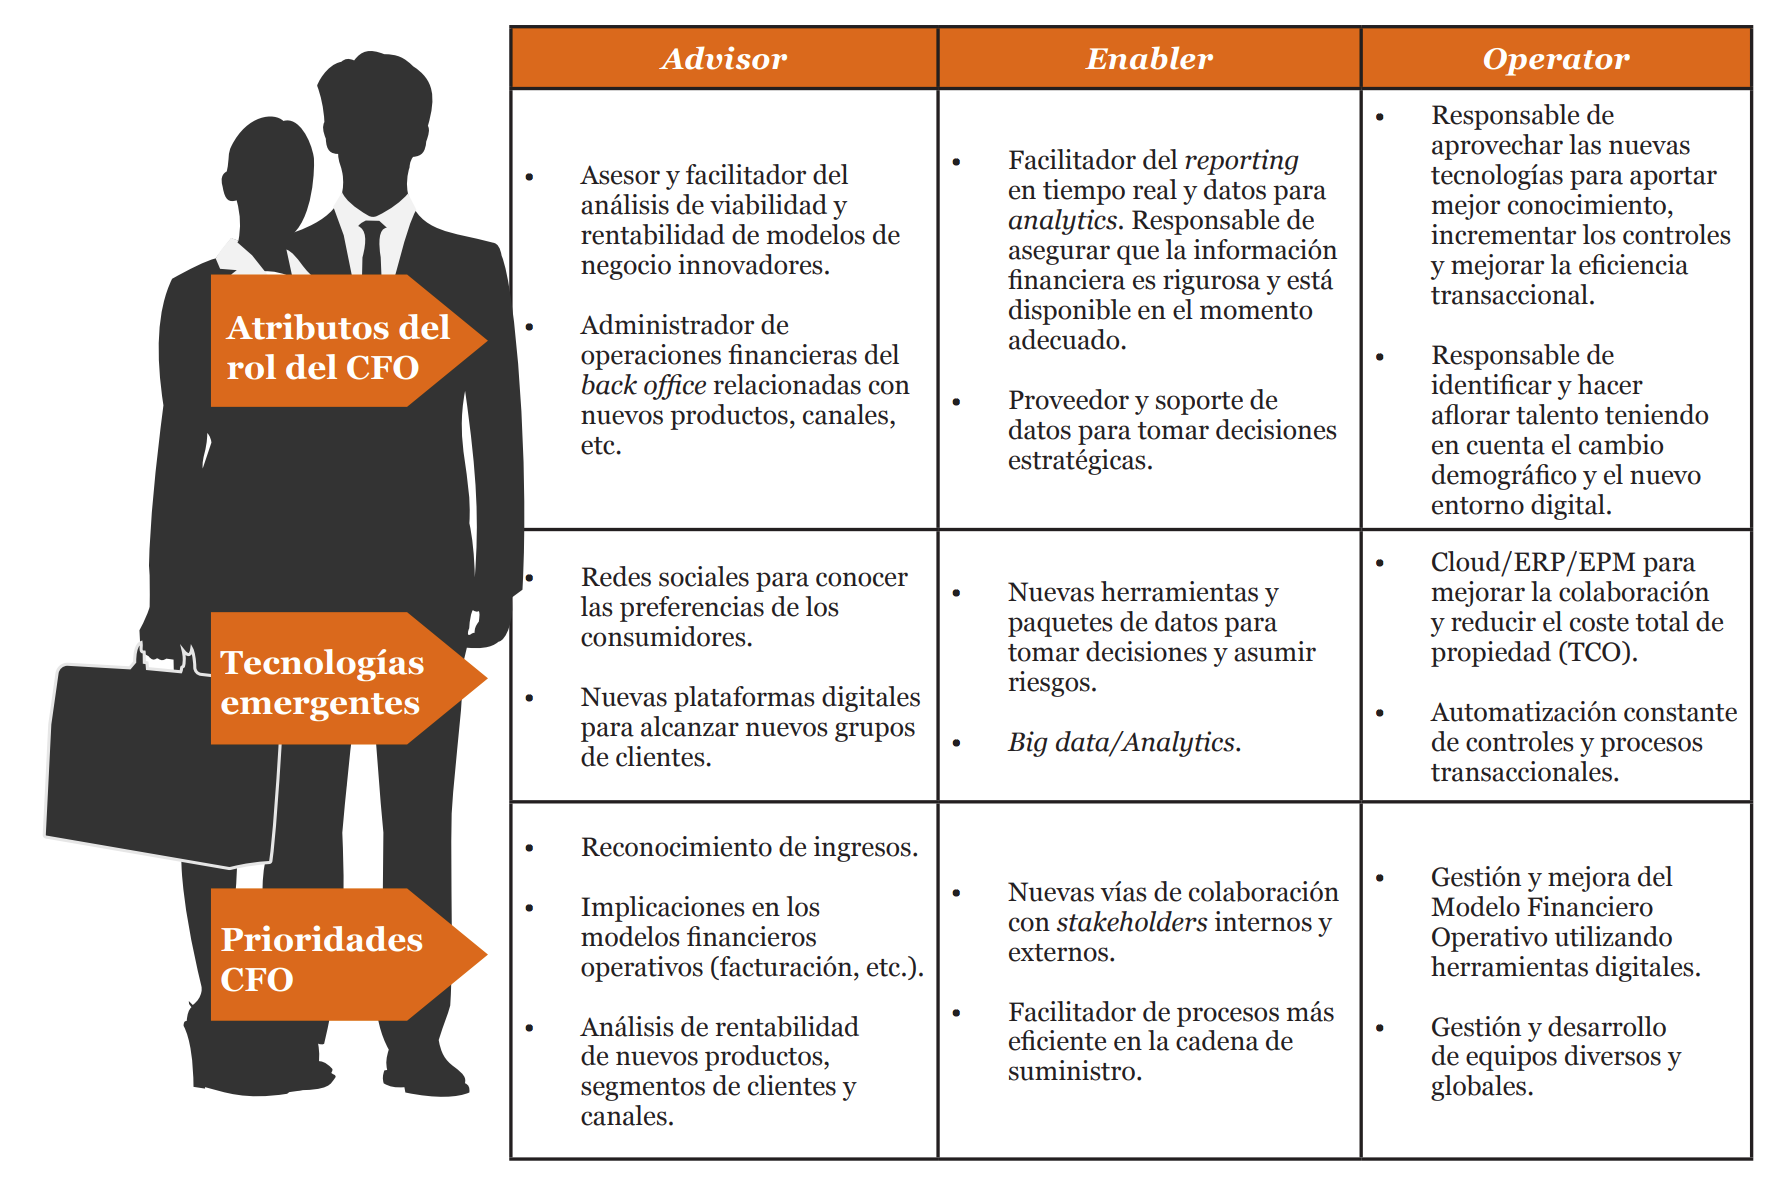 Atributos y Roles CFO Transformación Digital